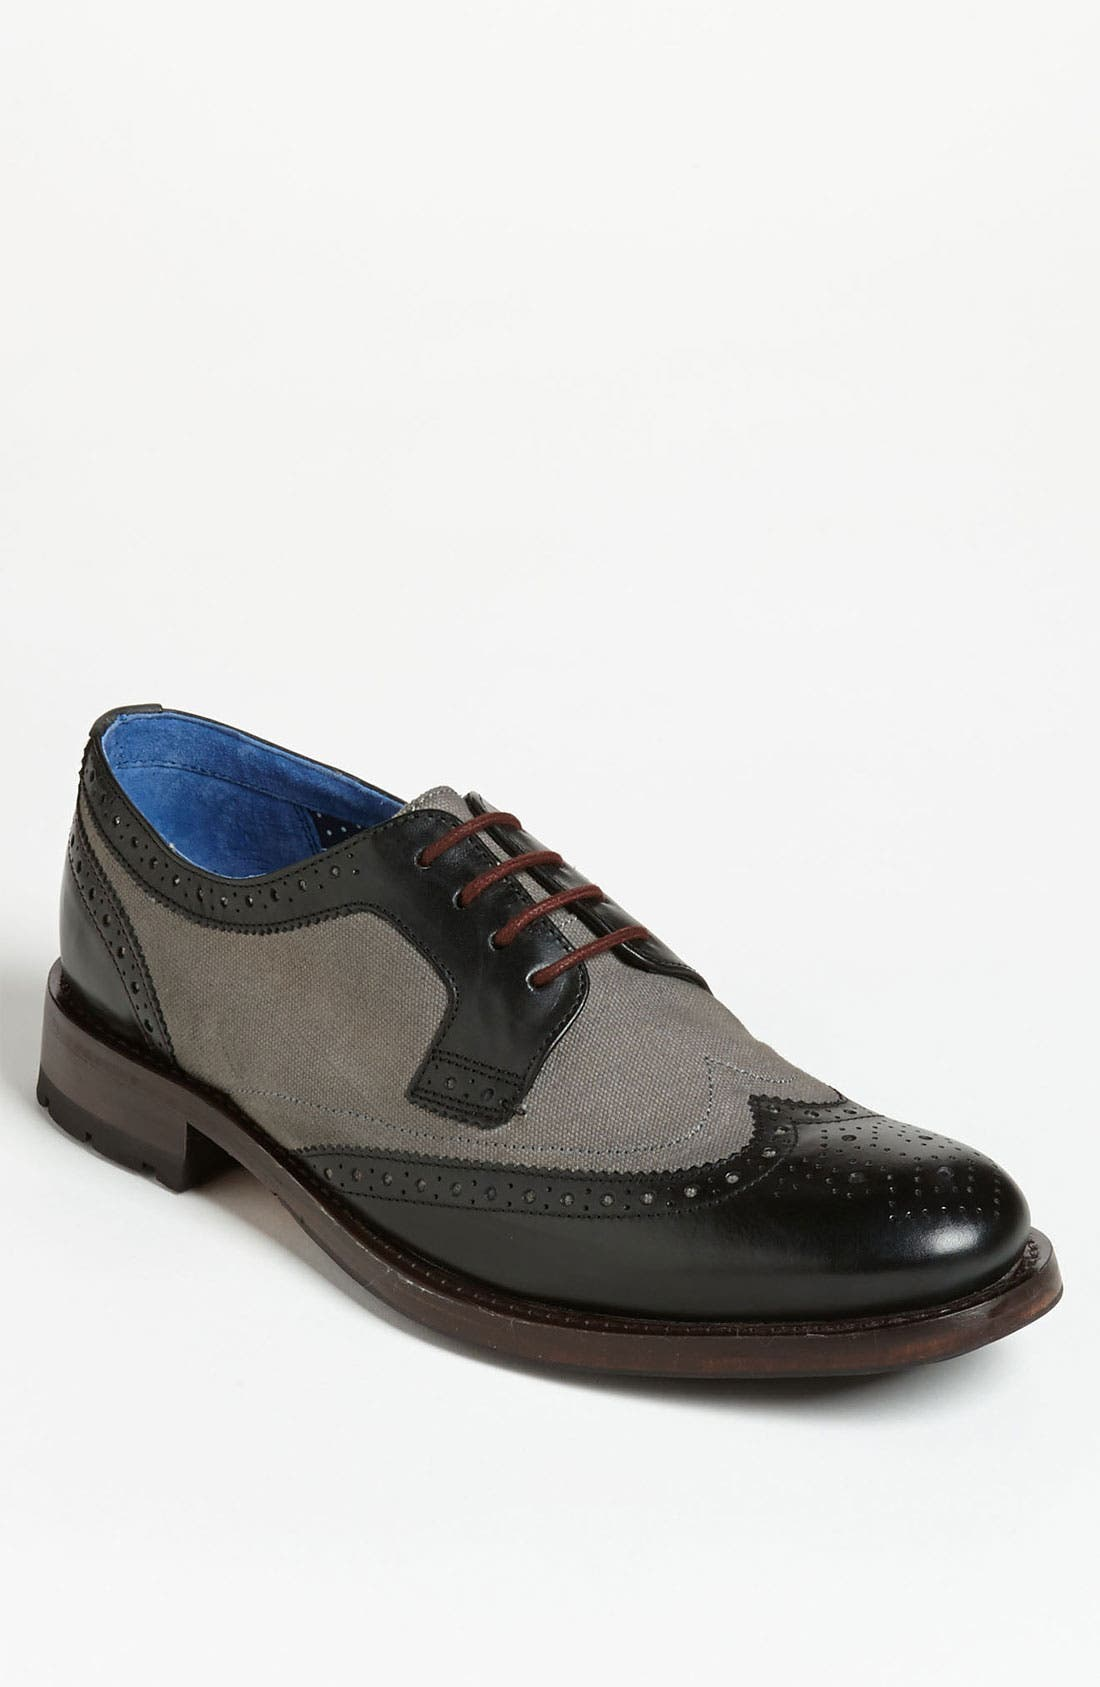 Alternate Image 1 Selected - Ted Baker London 'Cassiuss' Spectator Shoe